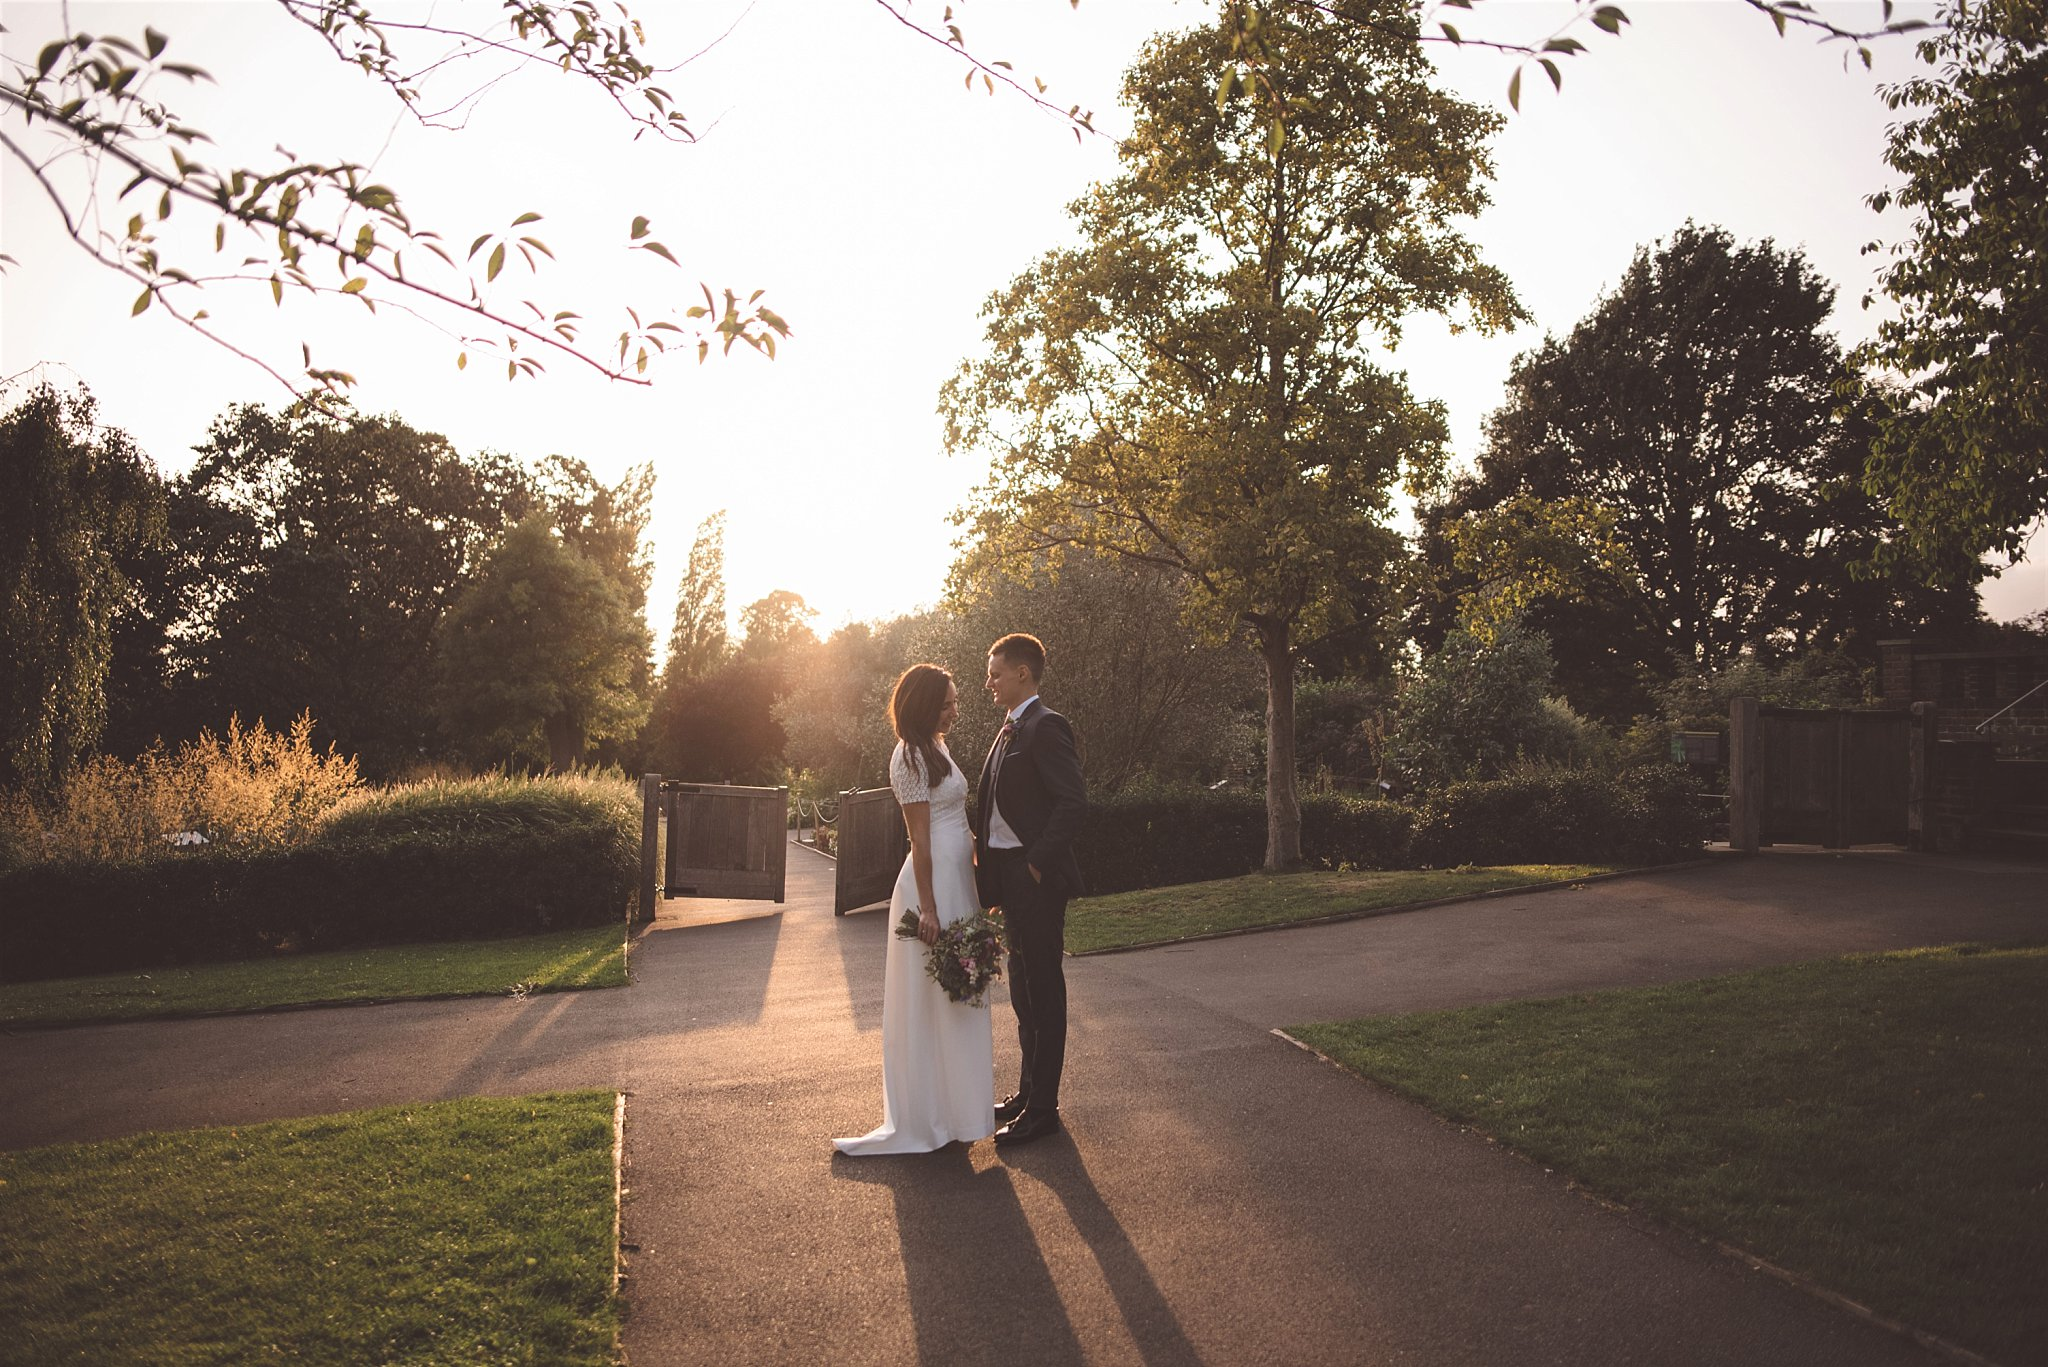 Golden hour wedding photography in London